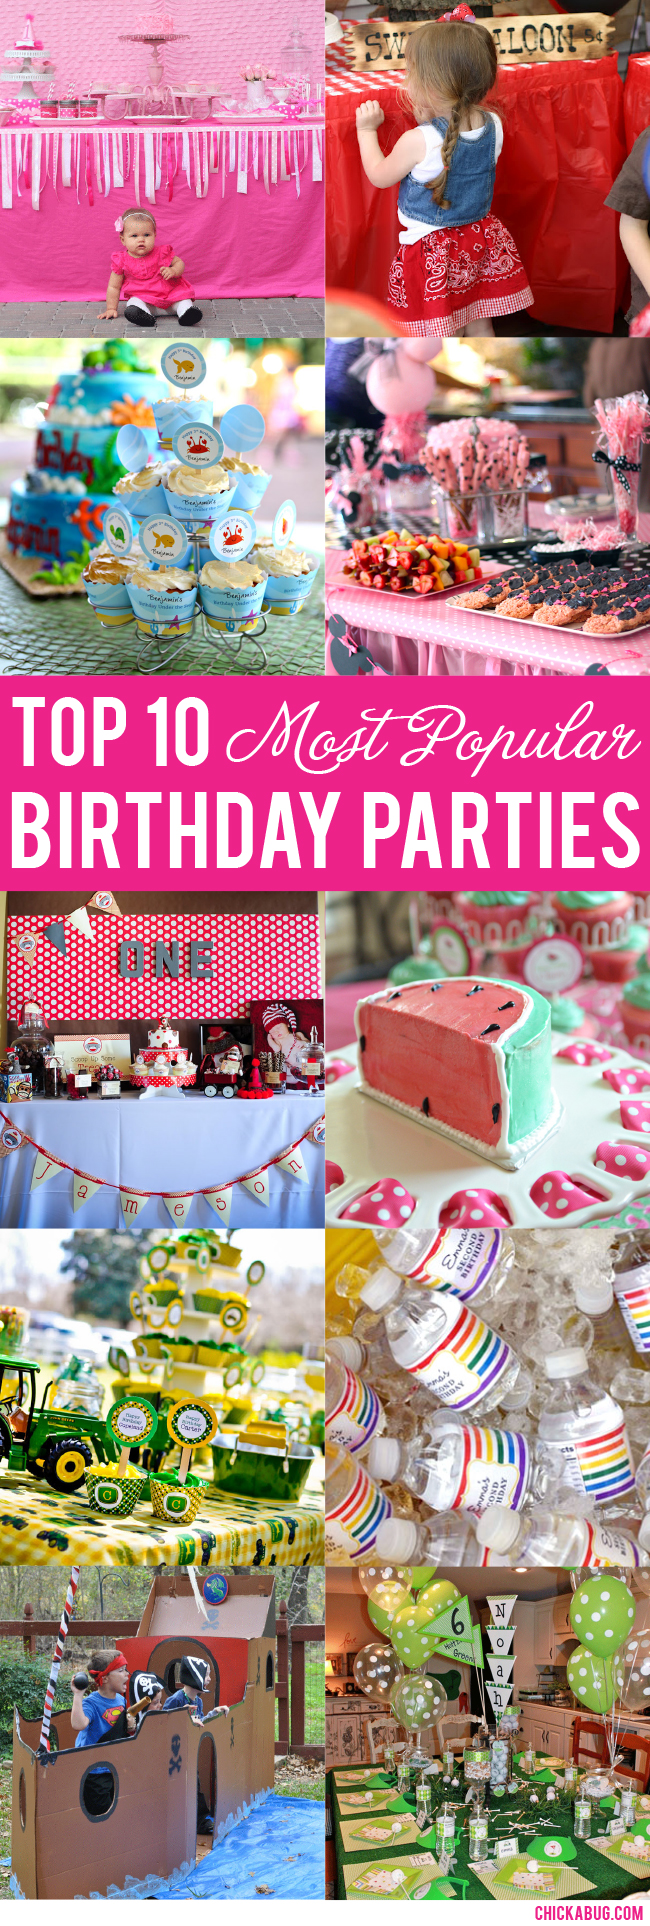 Top 10 Most Popular Birthday Parties :: Awesome ideas for boys' and girls' parties!